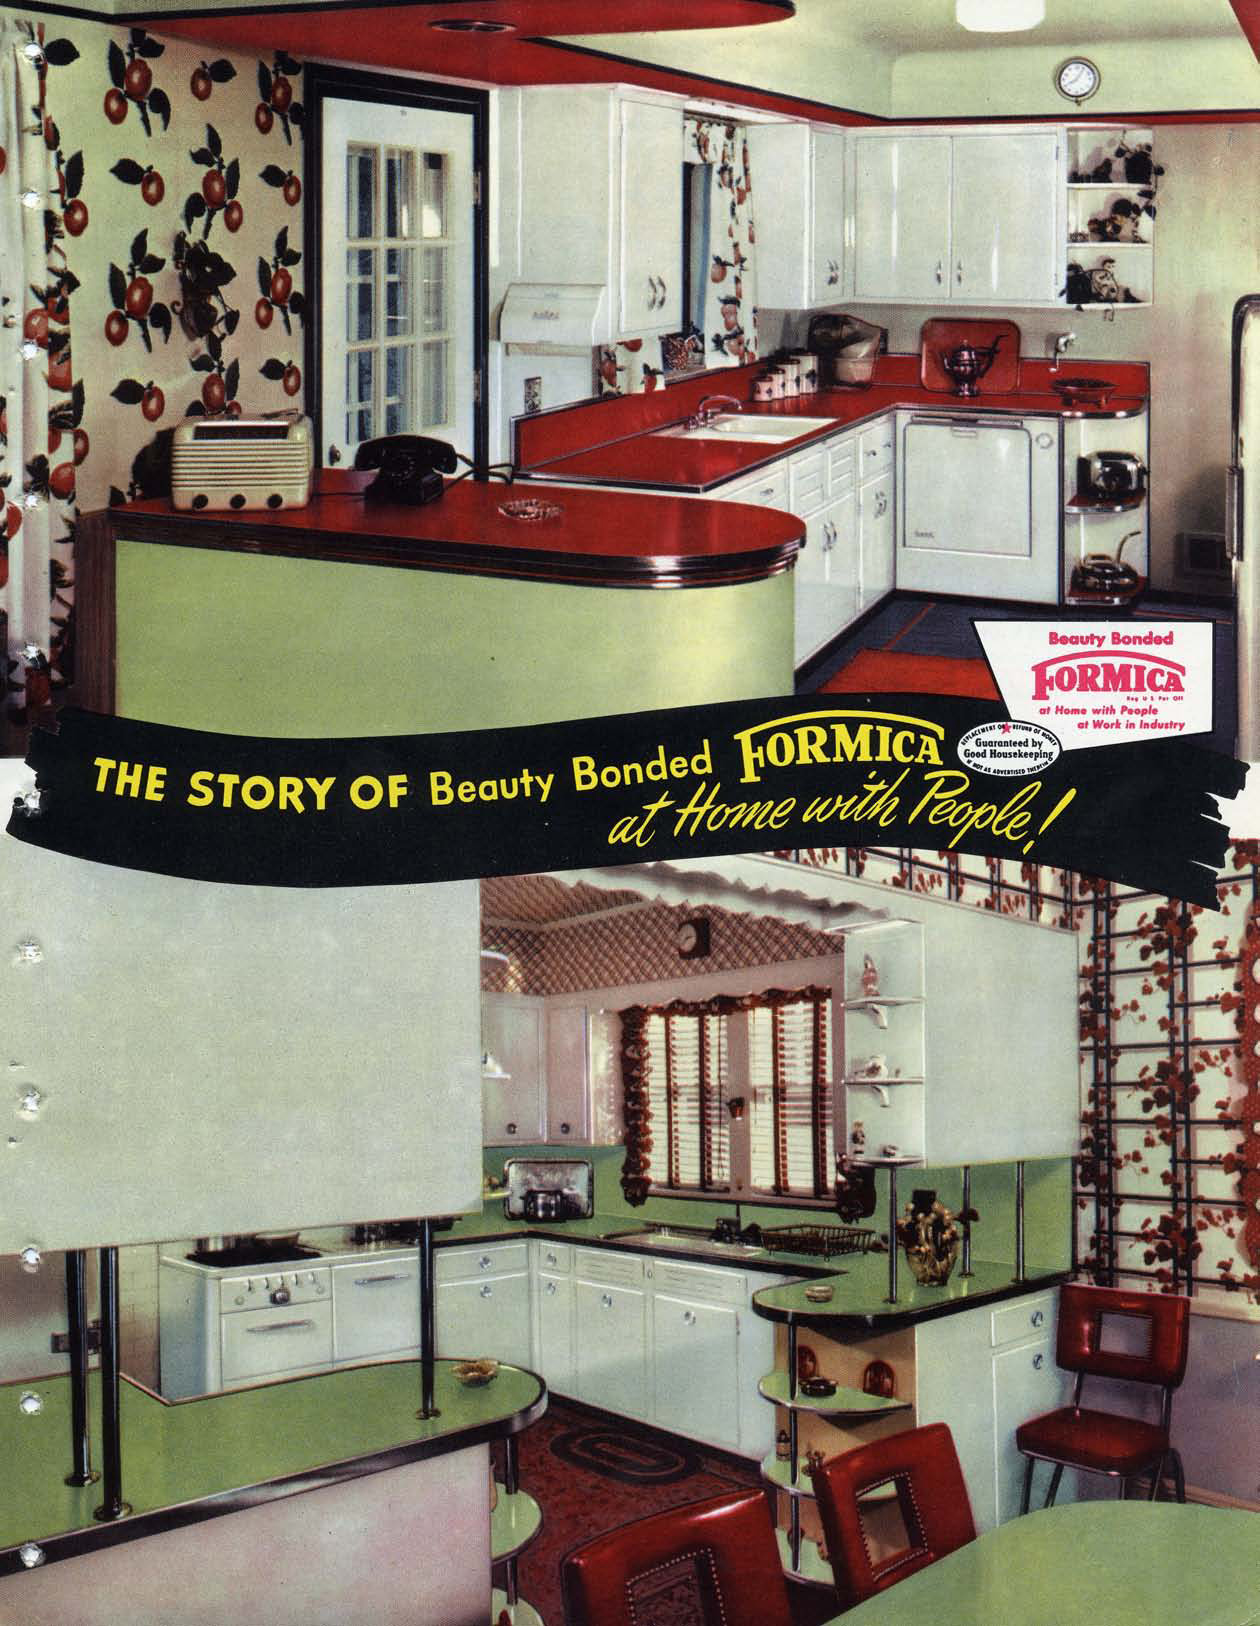 Formica Story 1951 Brochure Cover